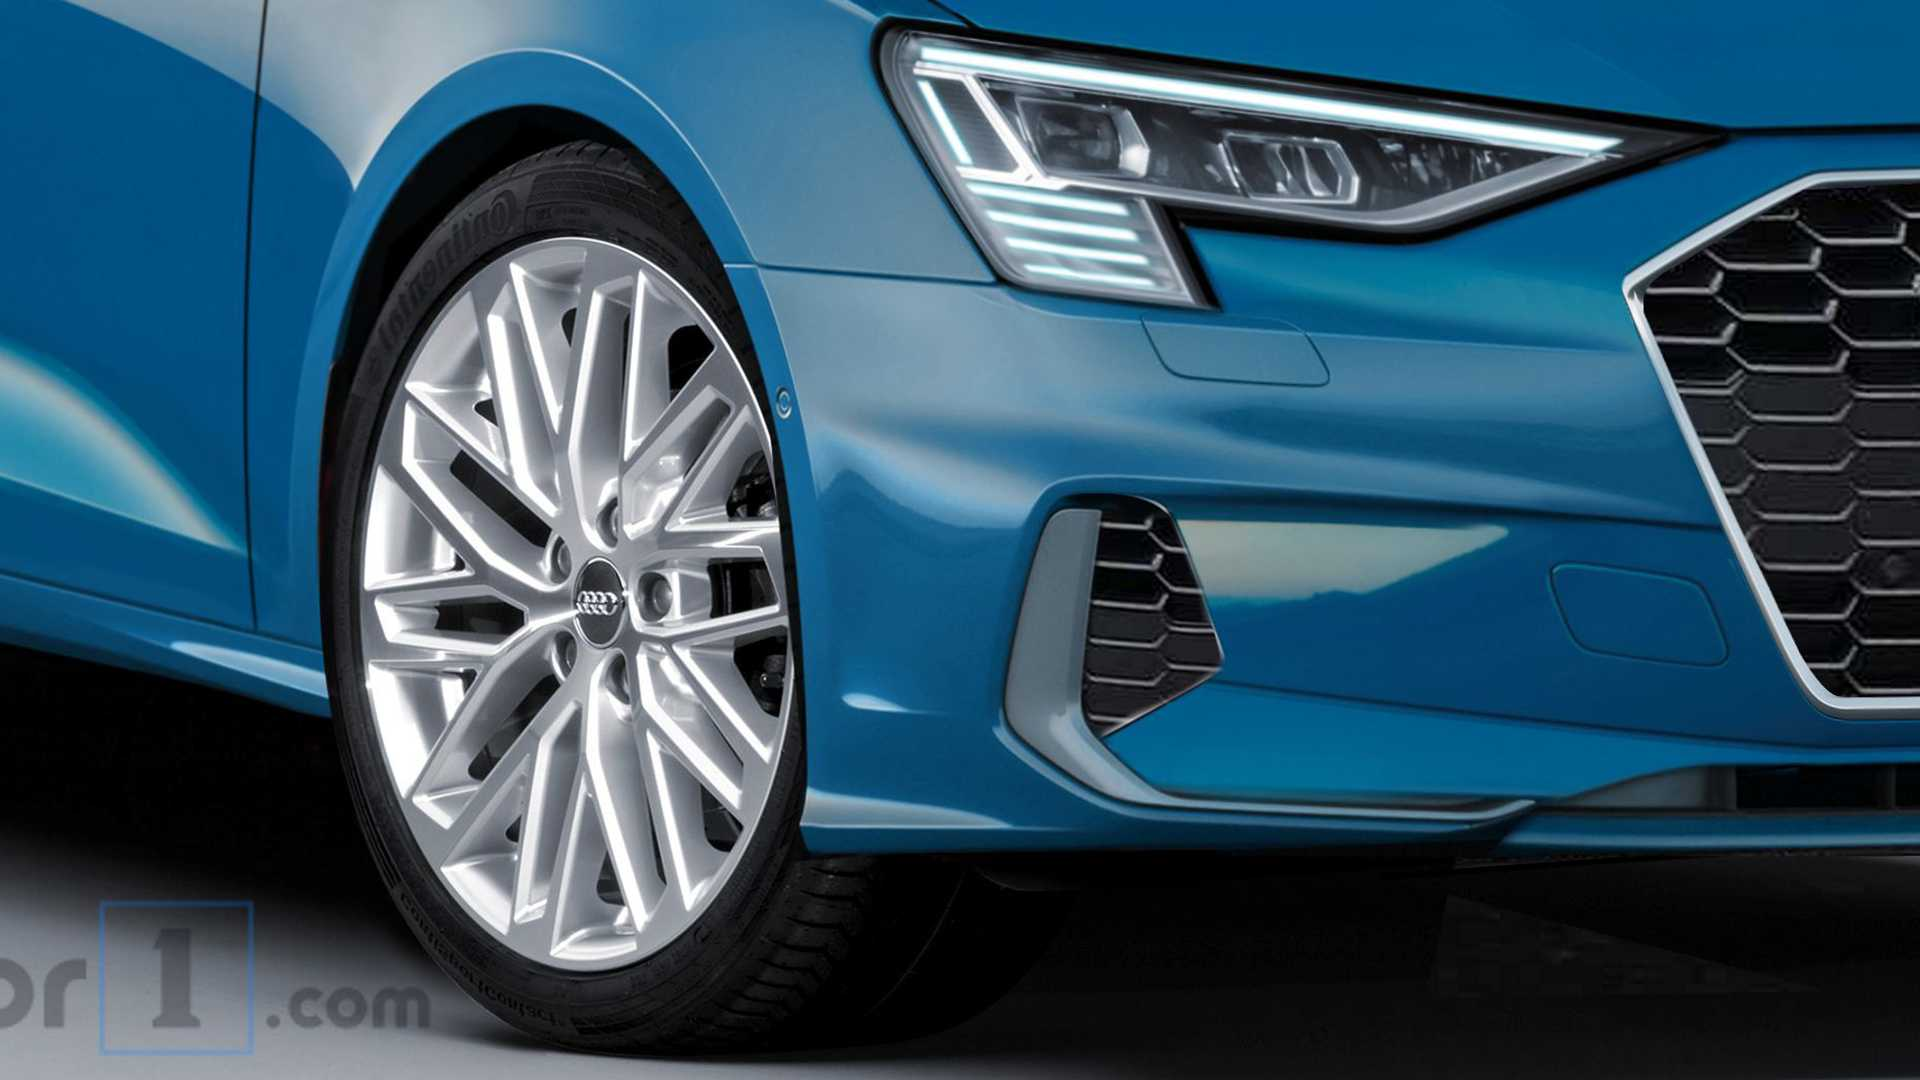 88 Concept of Audi A3 S Line 2020 History with Audi A3 S Line 2020